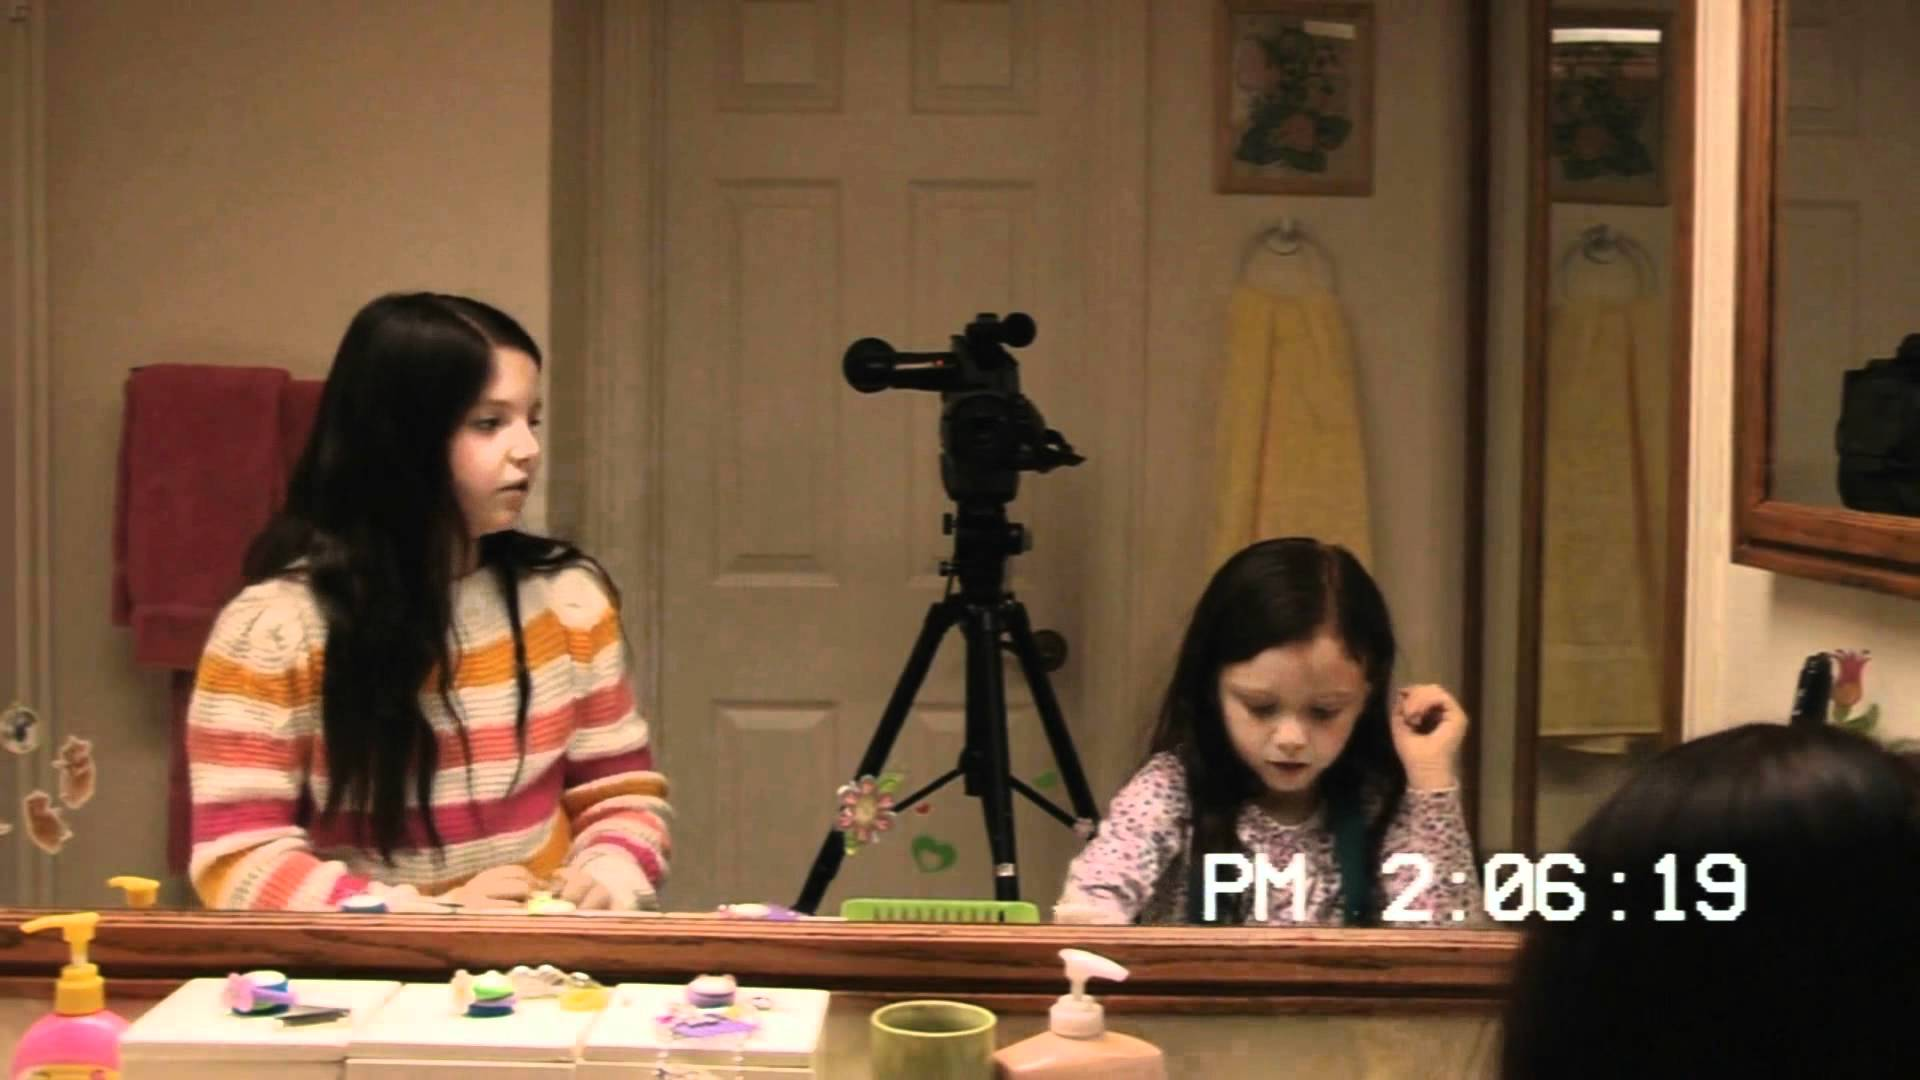 Chloe Csengery, Jessica Tyler Brown in Paranormal Activity 3 (2011)